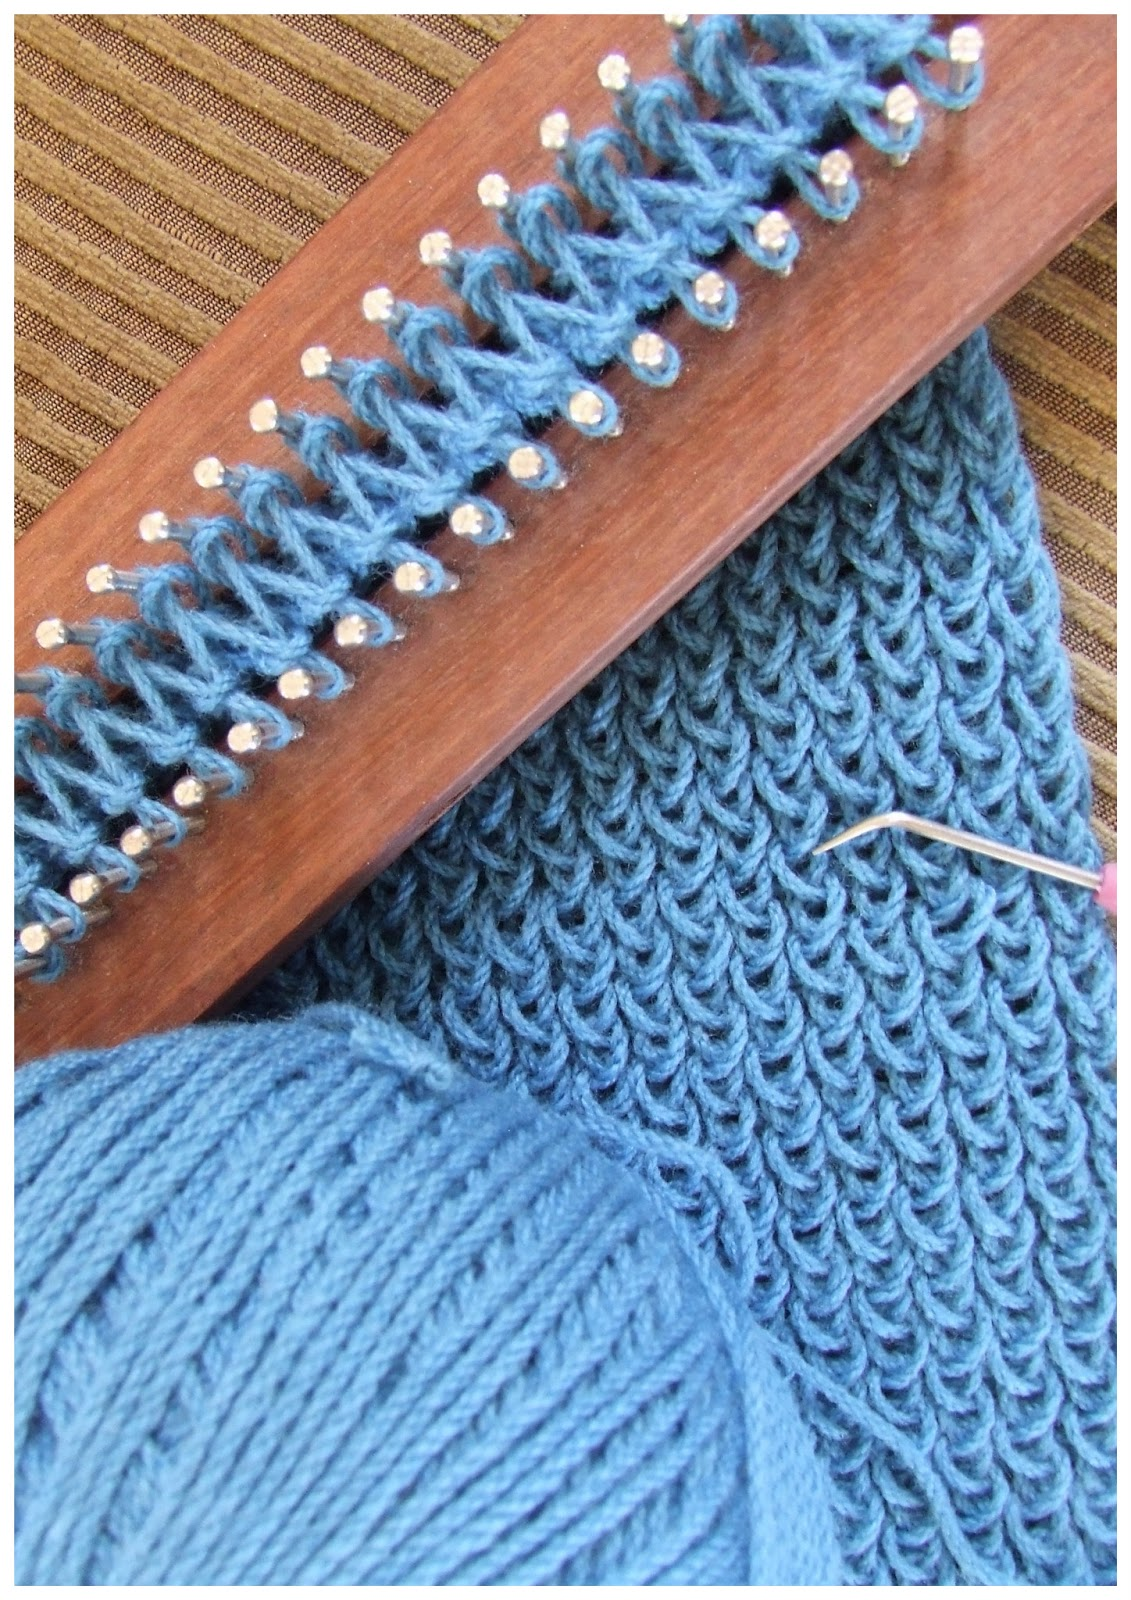 Knitting Scarf Patterns With Loom : FitzBirch Crafts: Loom Knitting